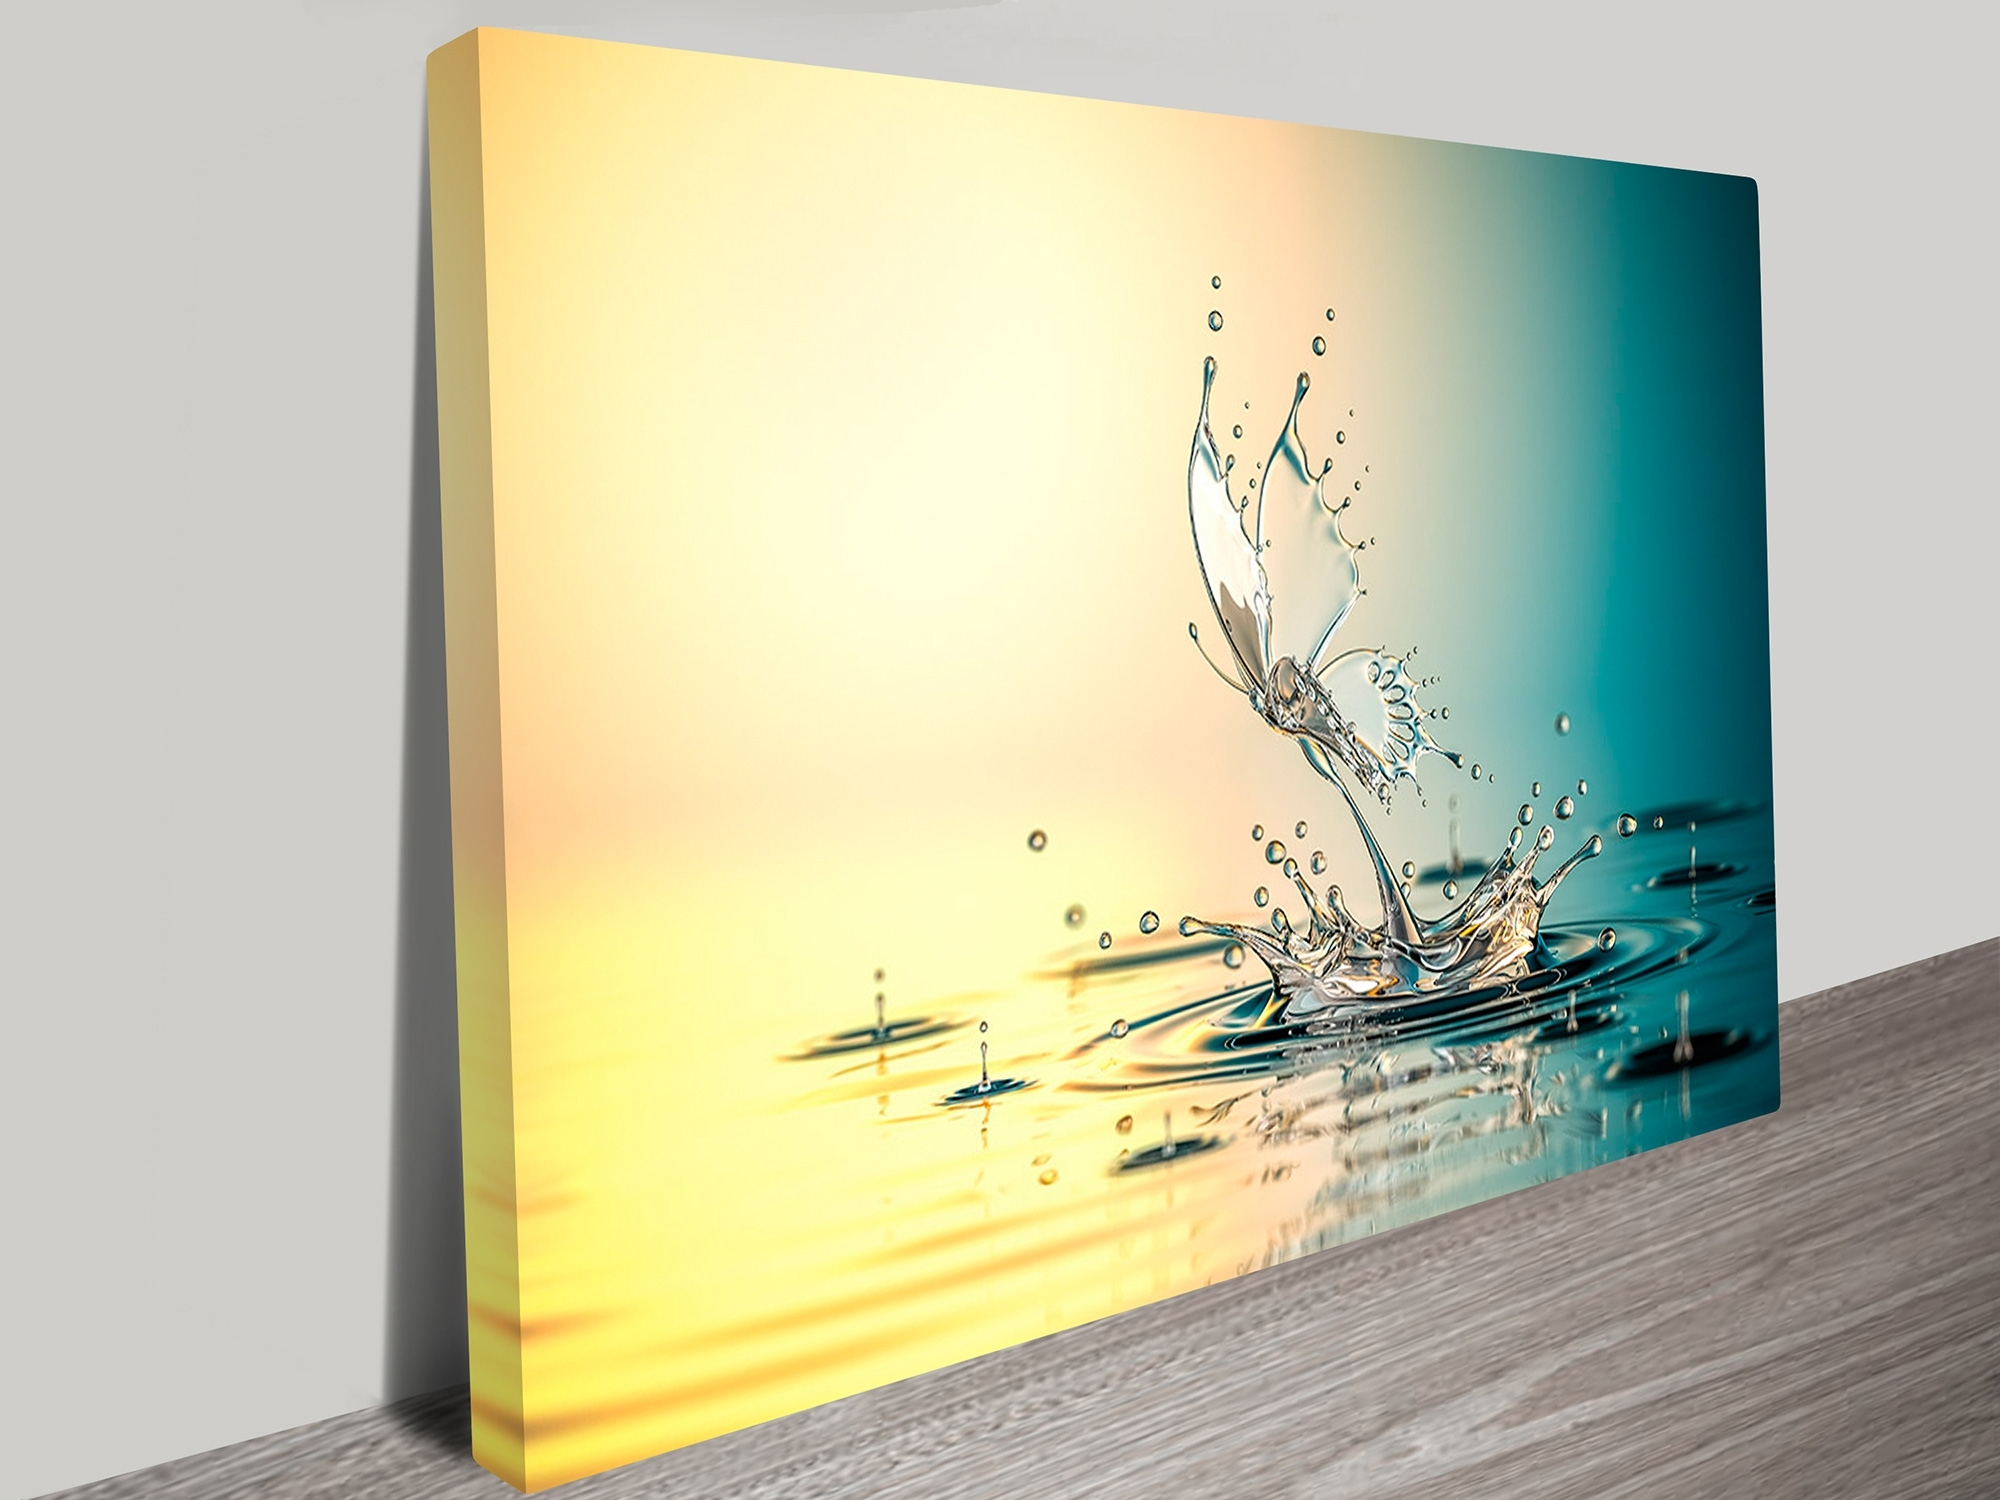 Water Butterfly Abstract Canvas Wall Art Geelong Intended For Well Known Abstract Canvas Wall Art Australia (View 3 of 15)